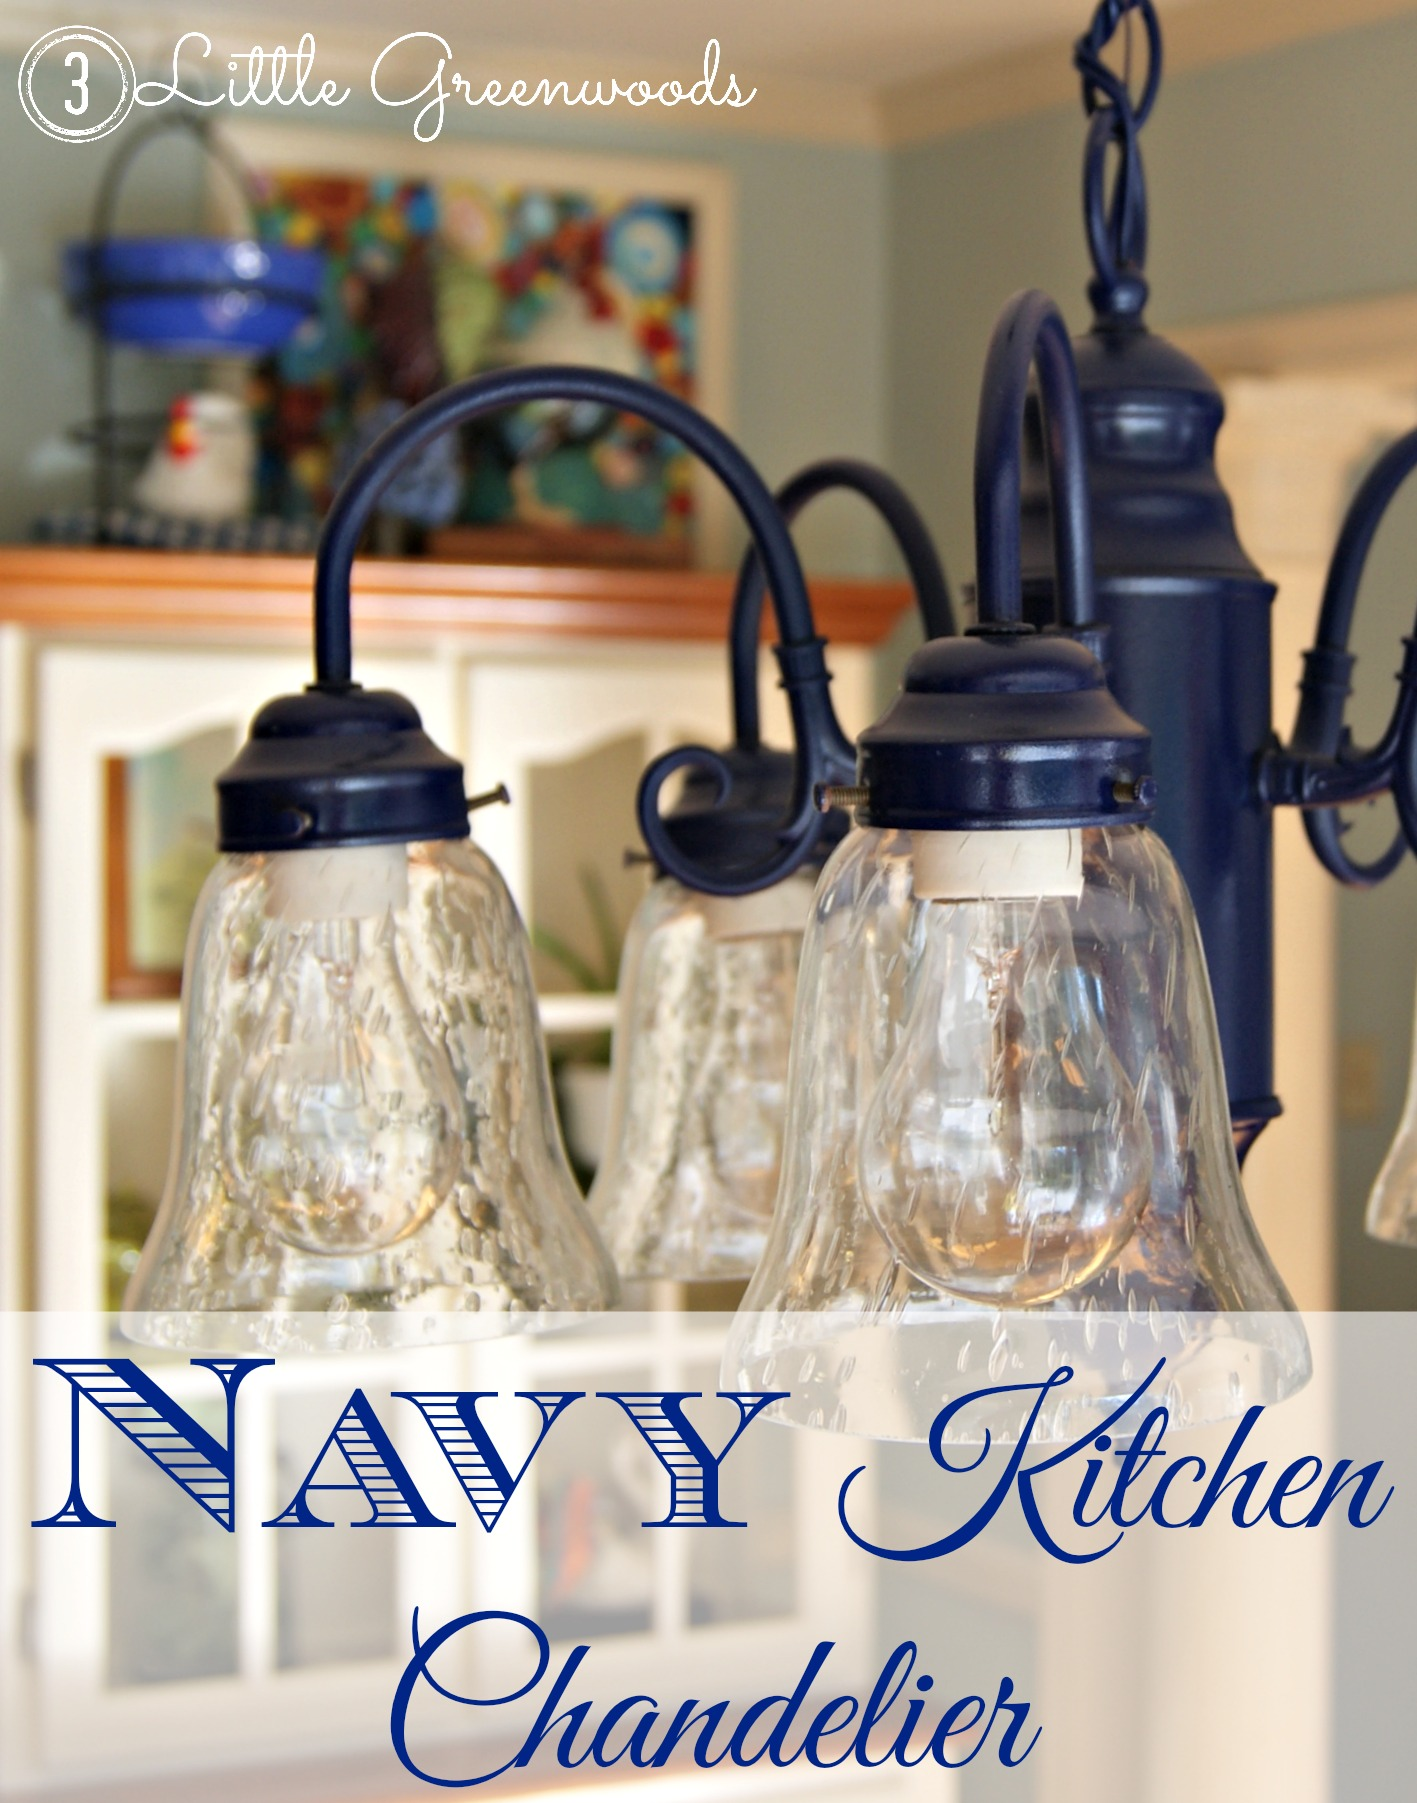 Add a punch of color with this DIY light fixture update! Navy Chandelier http://www.3littlegreenwoods.com